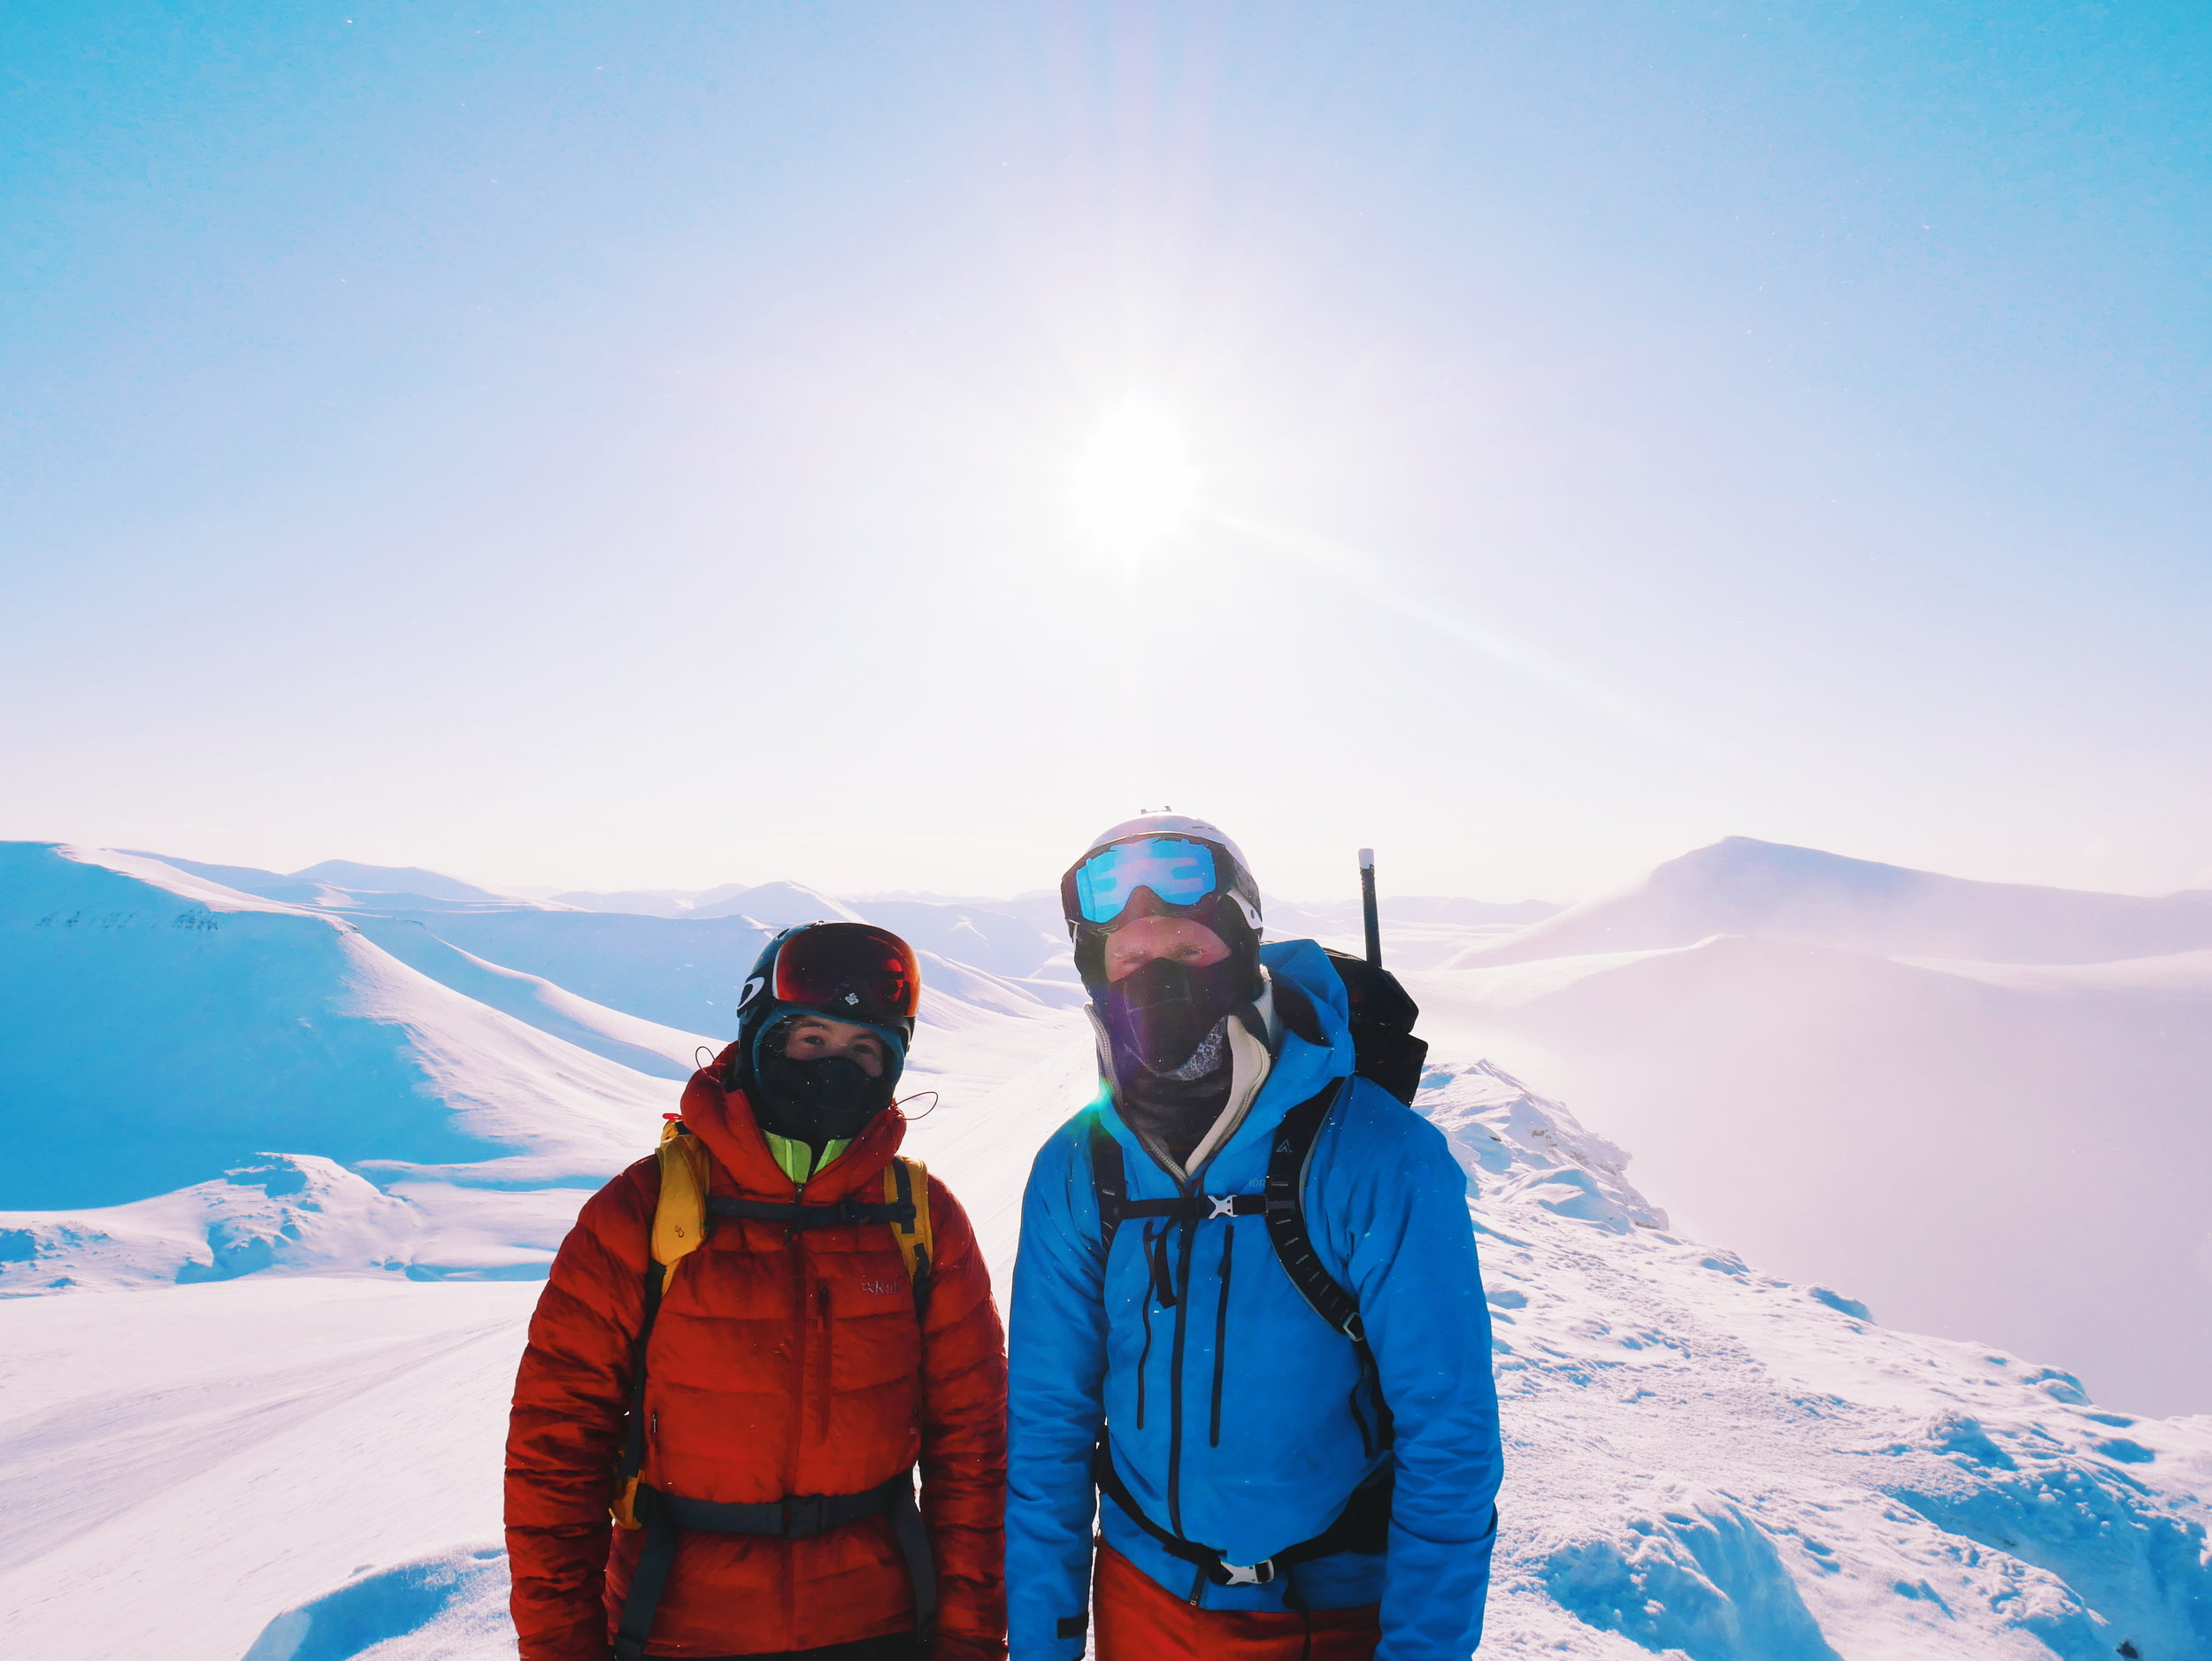 Mathea and her friend Erlend at Trollsteinen, Svalbard.